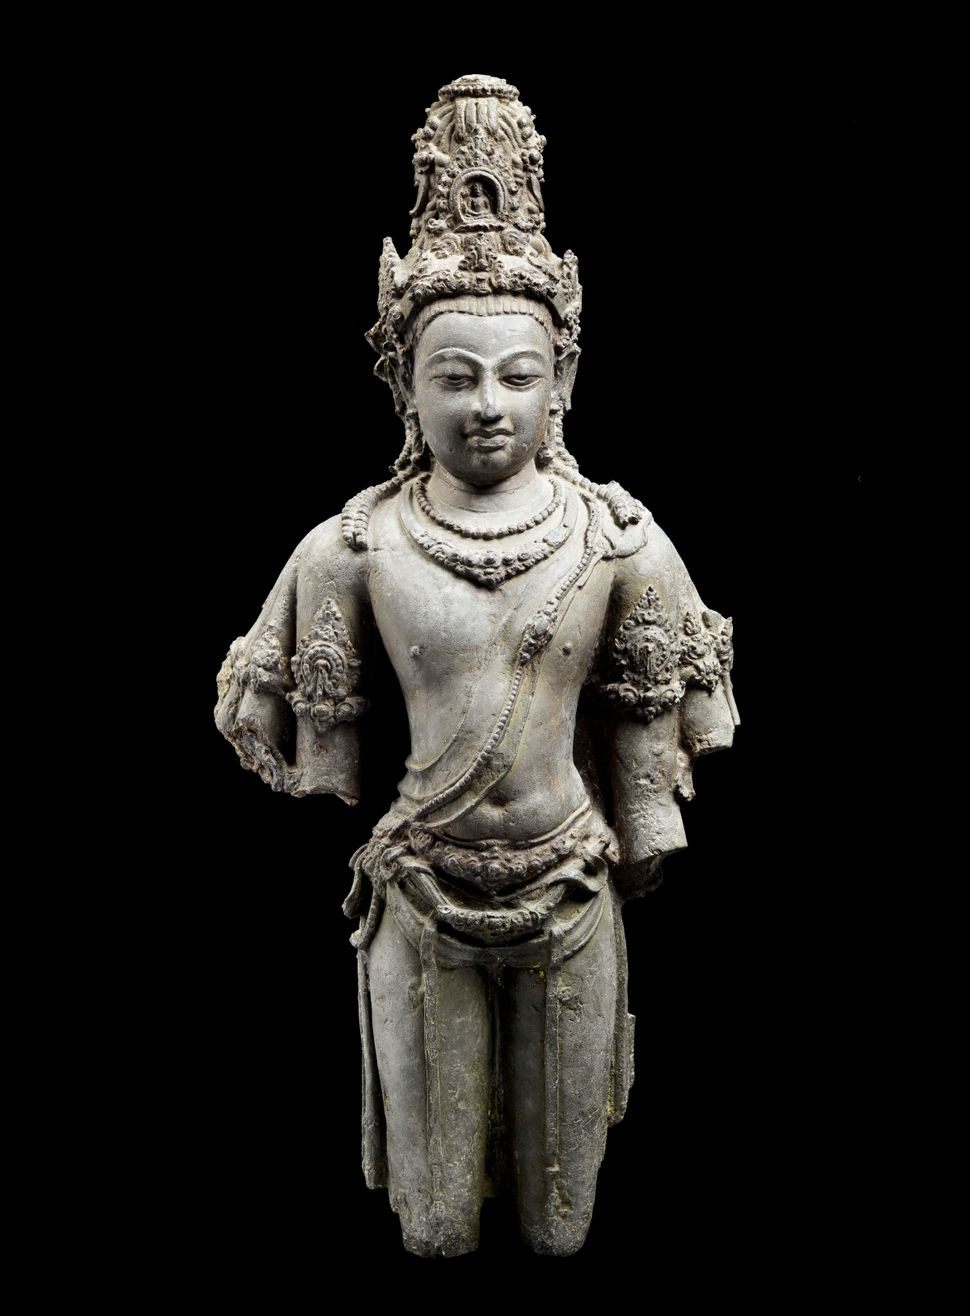 Bodhisattva Avalokiteshvara, Copper alloy with traces of gilding, Lent by National Museum, Bangkok, Photo: Thierry Ollivier